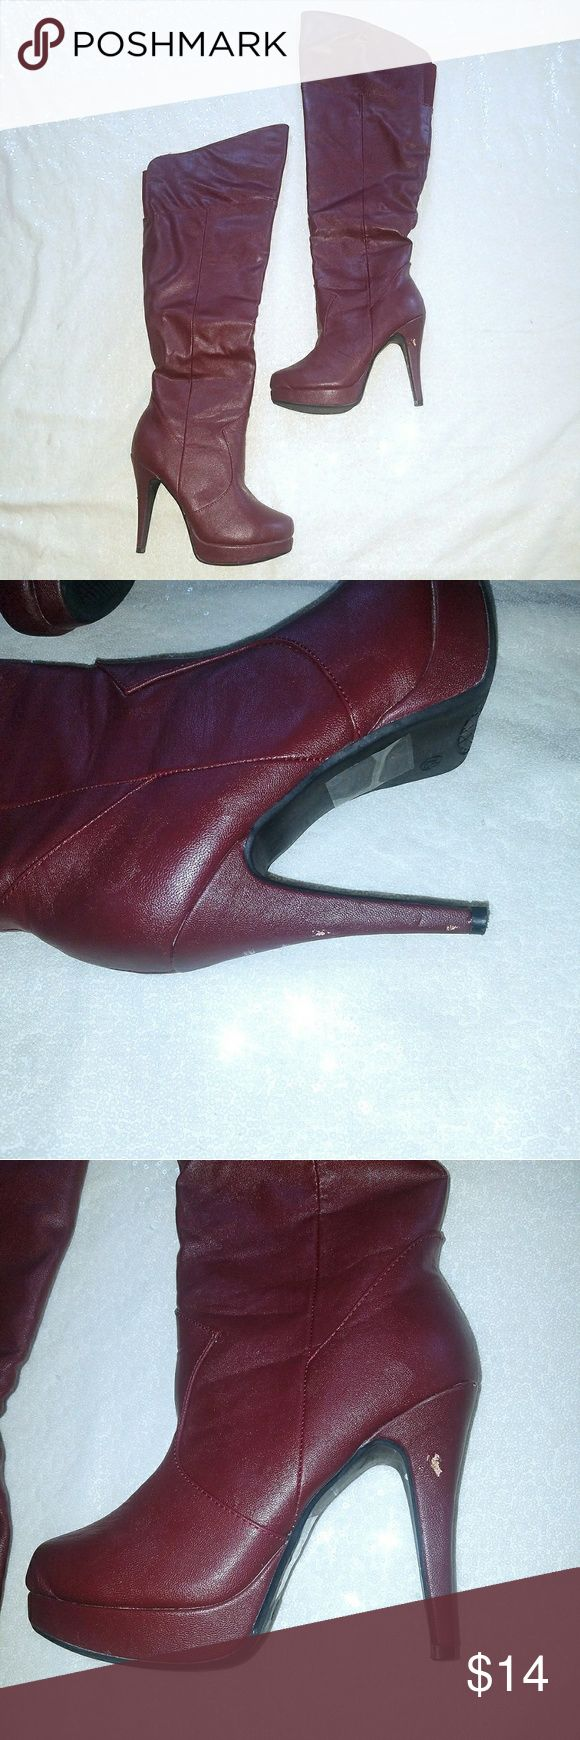 """🆕Merlot, over the knee boots, 4"""" heel Statement style! Over the knee boots in merlot. High 4"""" heel. Slight scuffs in the leather -see photos.  Box included. Other than scuffs the boots are in excellent condition. Shoe Dazzle Shoes Over the Knee Boots"""